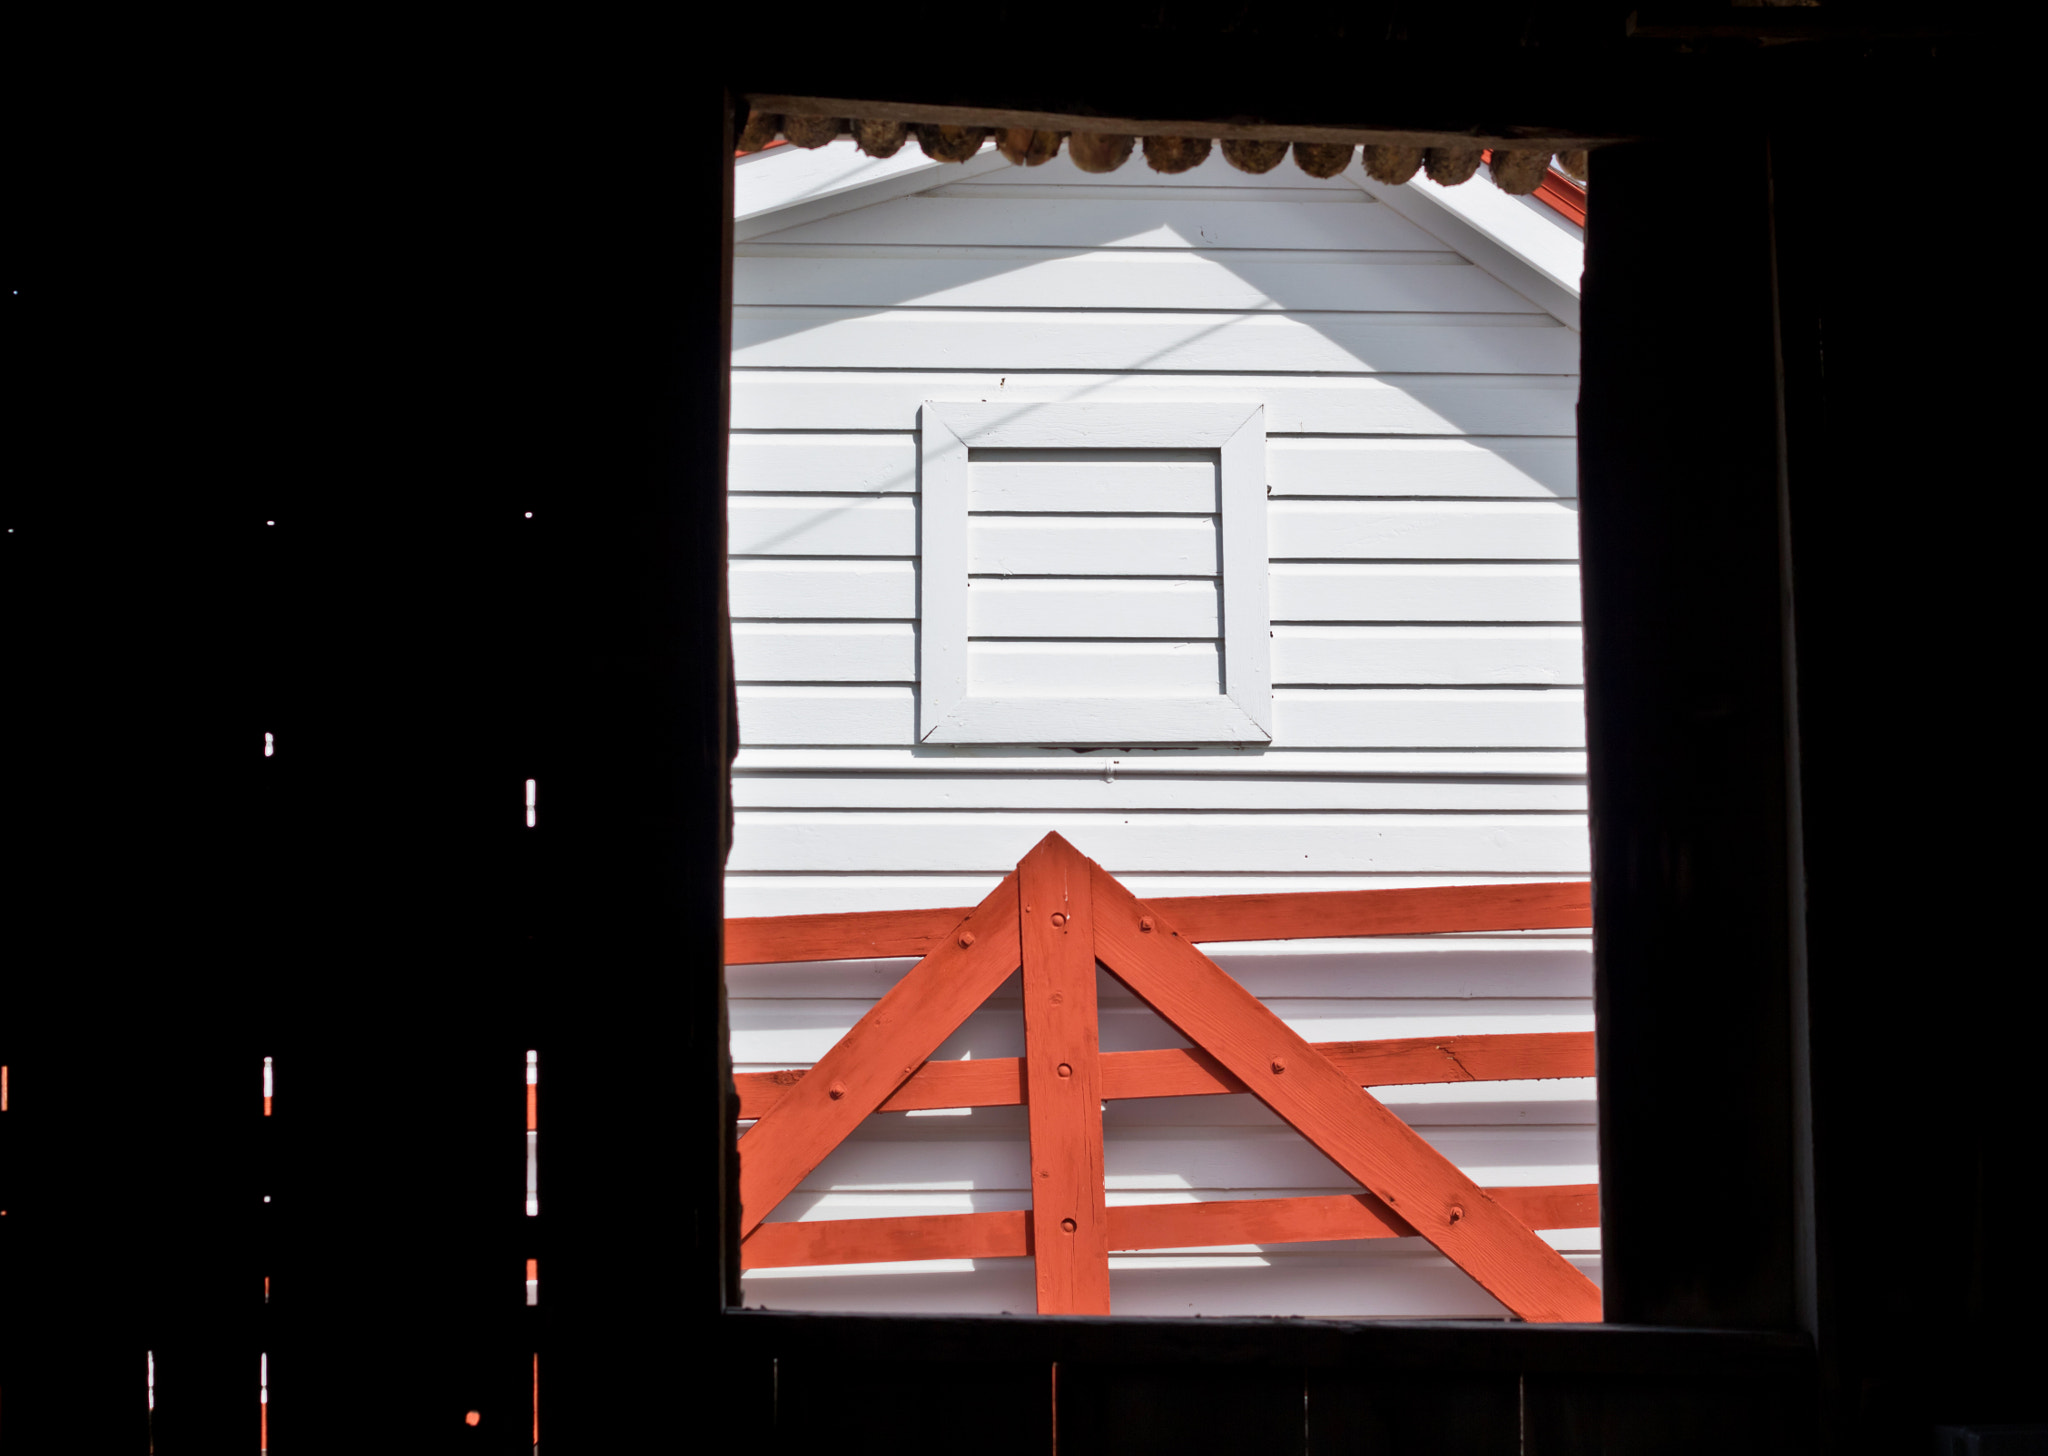 Photograph FROM BUNKHOUSE TO BARN by Elizabeth Tool on 500px